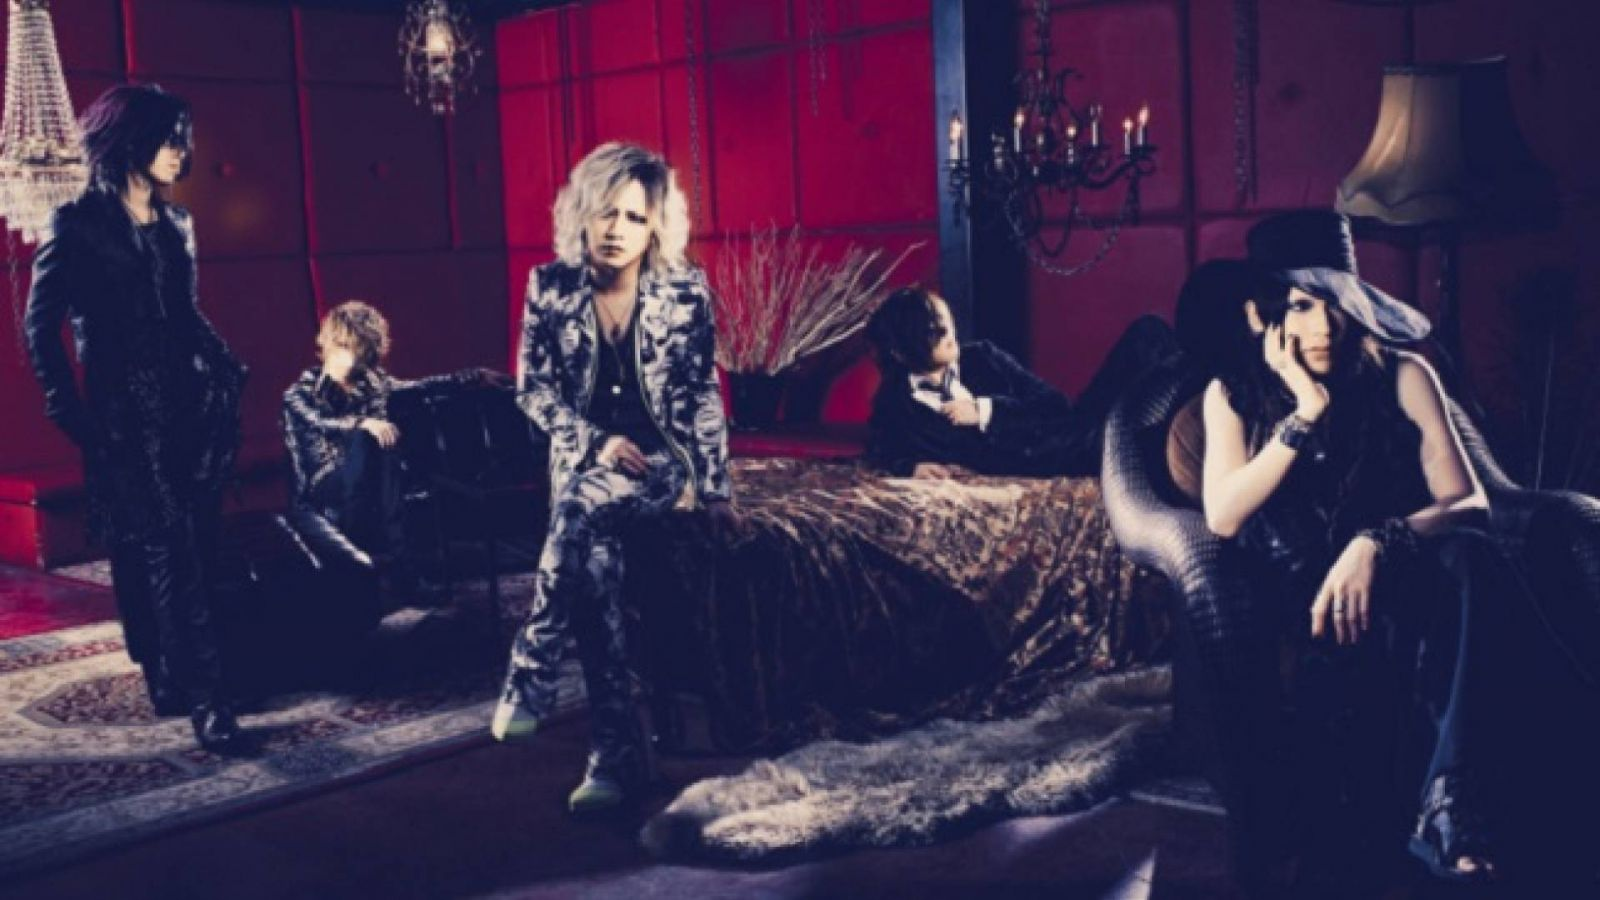 the GazettE © the GazettE